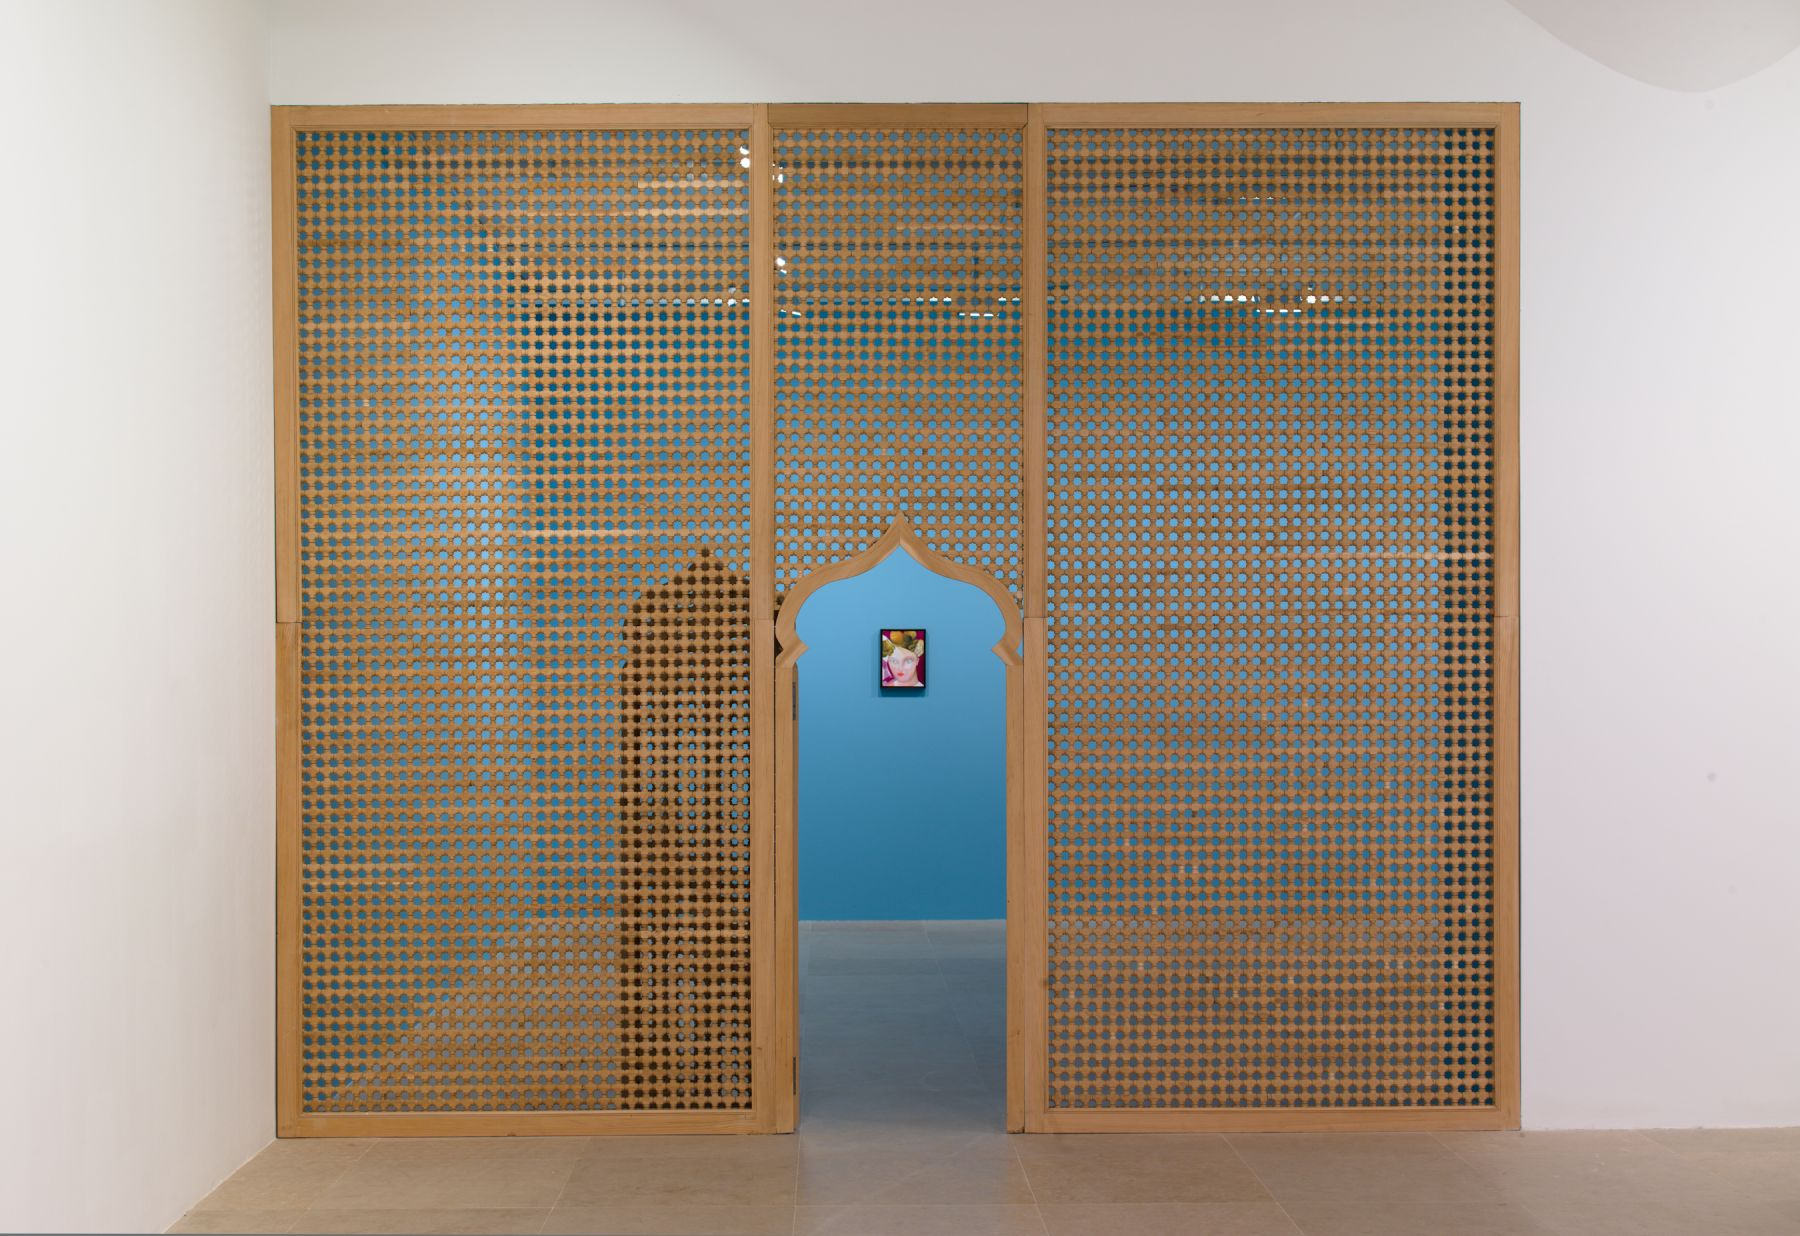 Katharina Wulff, Installation view, Wanwizzi, Greene Naftali, New York, 2010